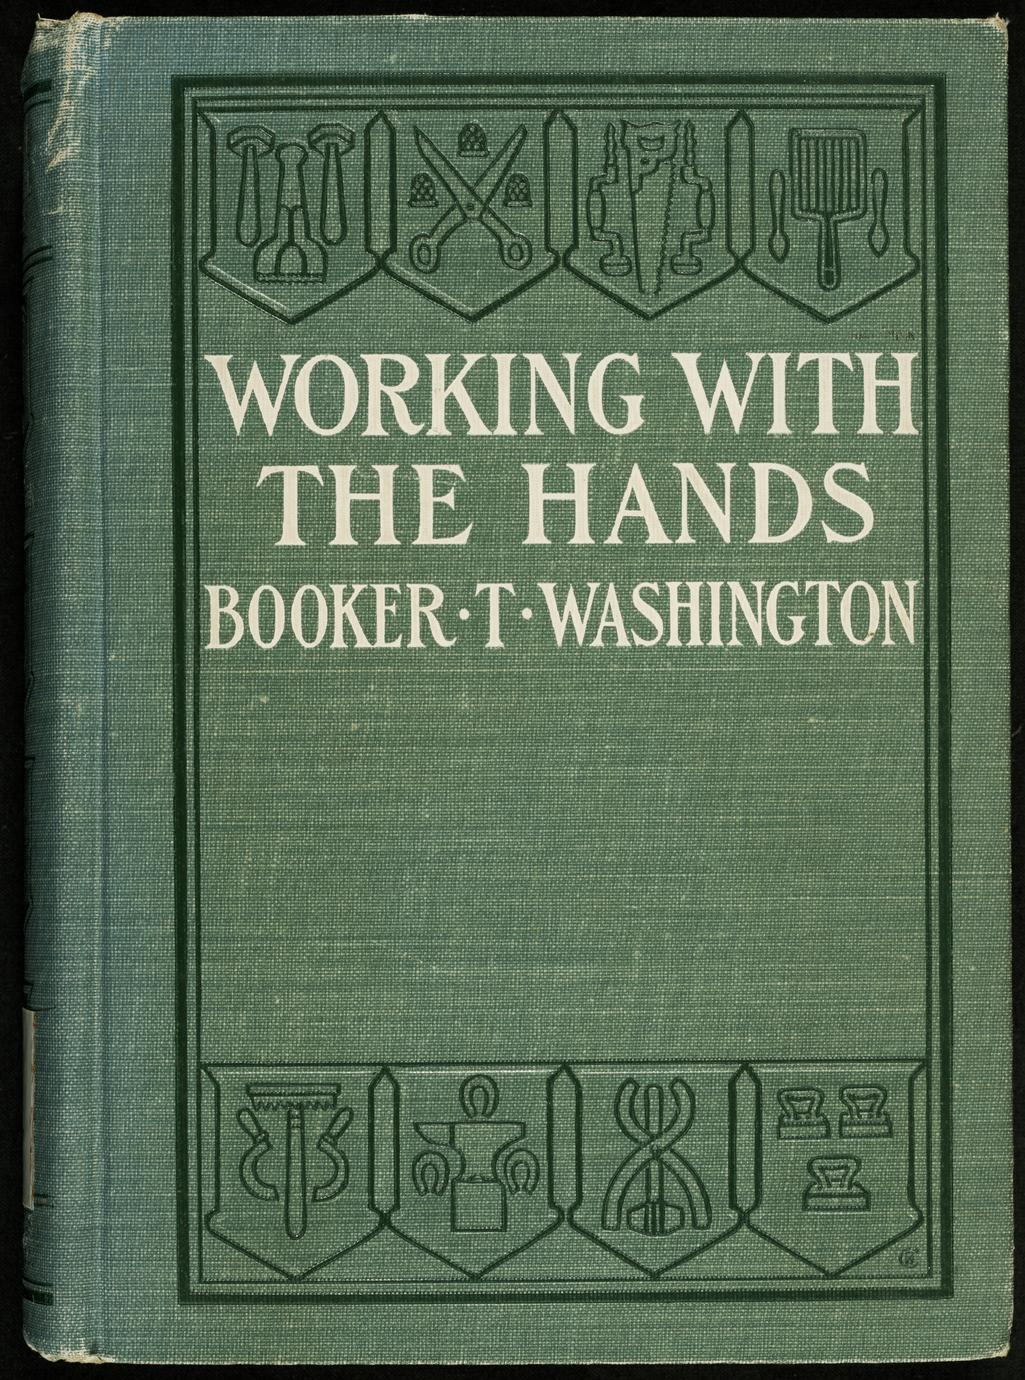 Working with the hands : being a sequel to Up from slavery, covering the author's experiences in industrial training at Tuskegee (1 of 2)